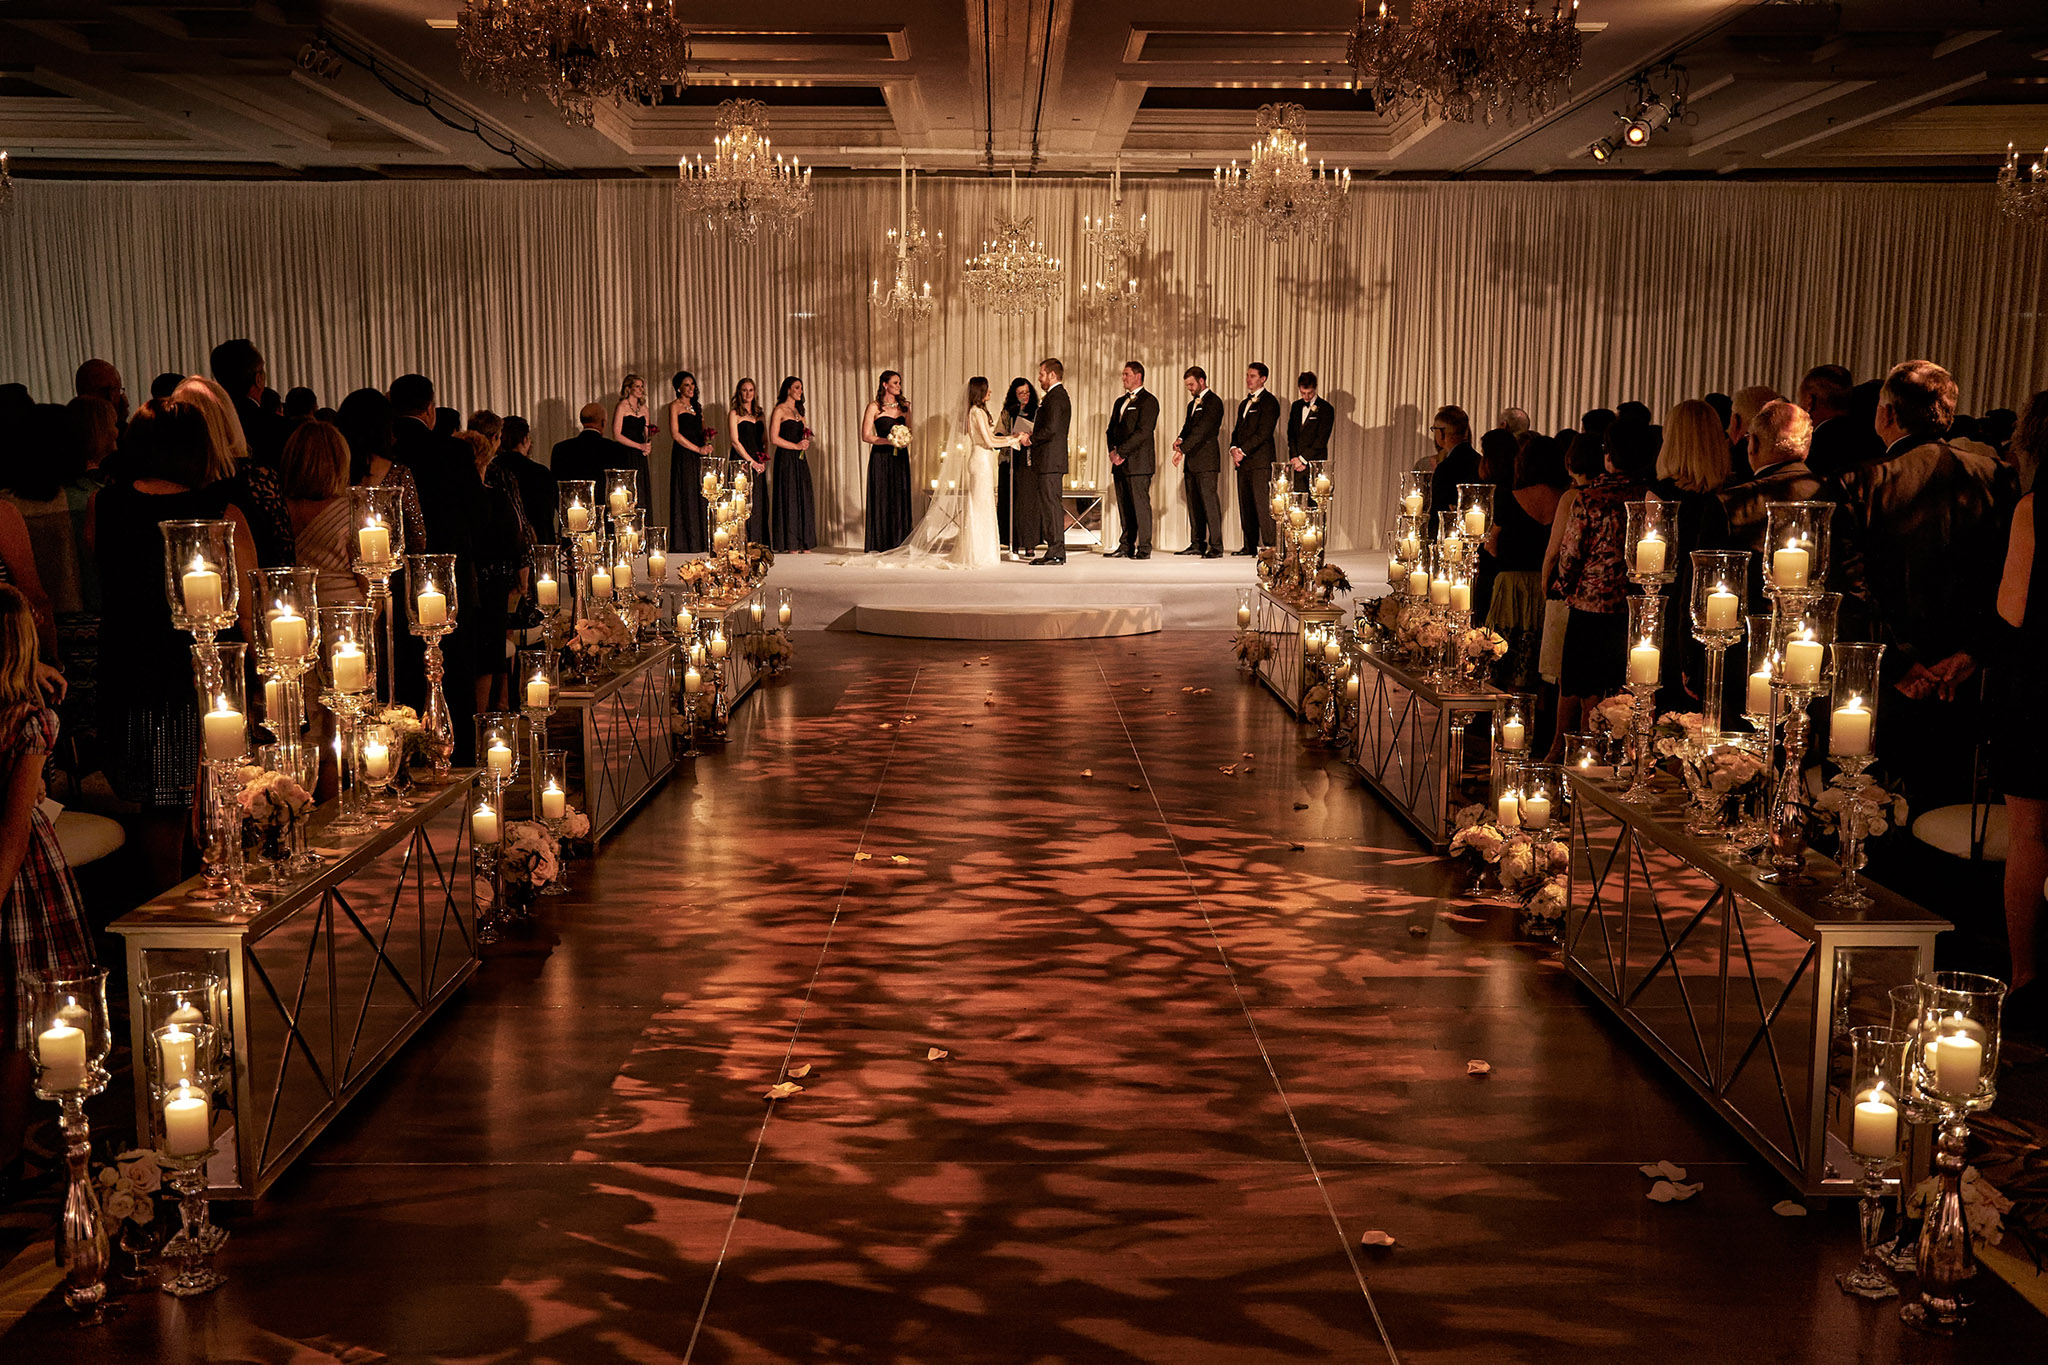 Light projections on aisle indoor wedding ceremony ideas